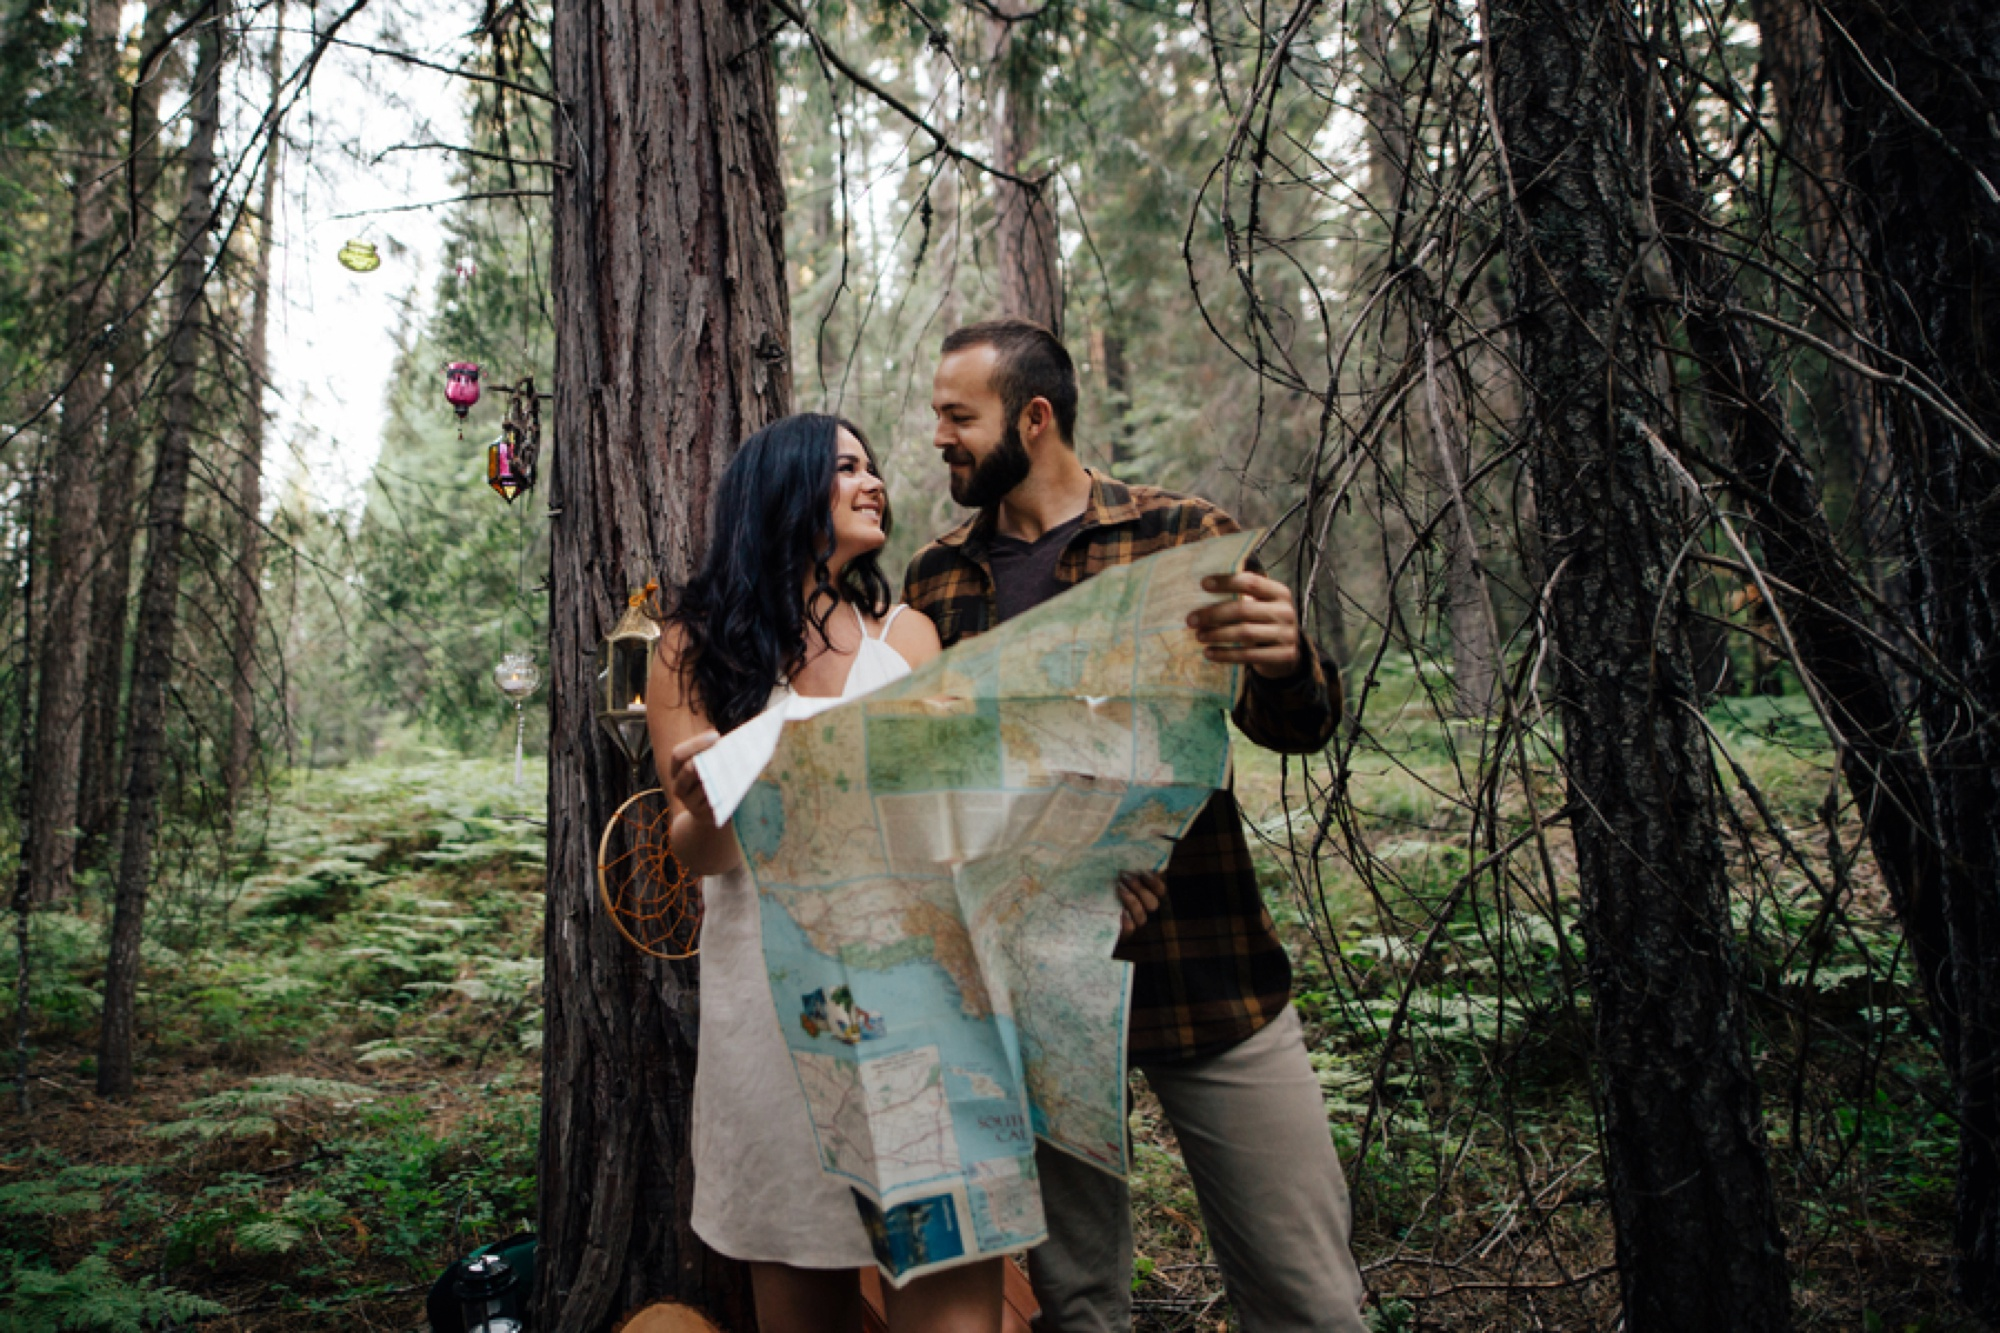 engagement picture ideas, what to wear for engagement pictures, engagement sessions with dogs, styled engagement shoots, Cozy Camping Engagement Session